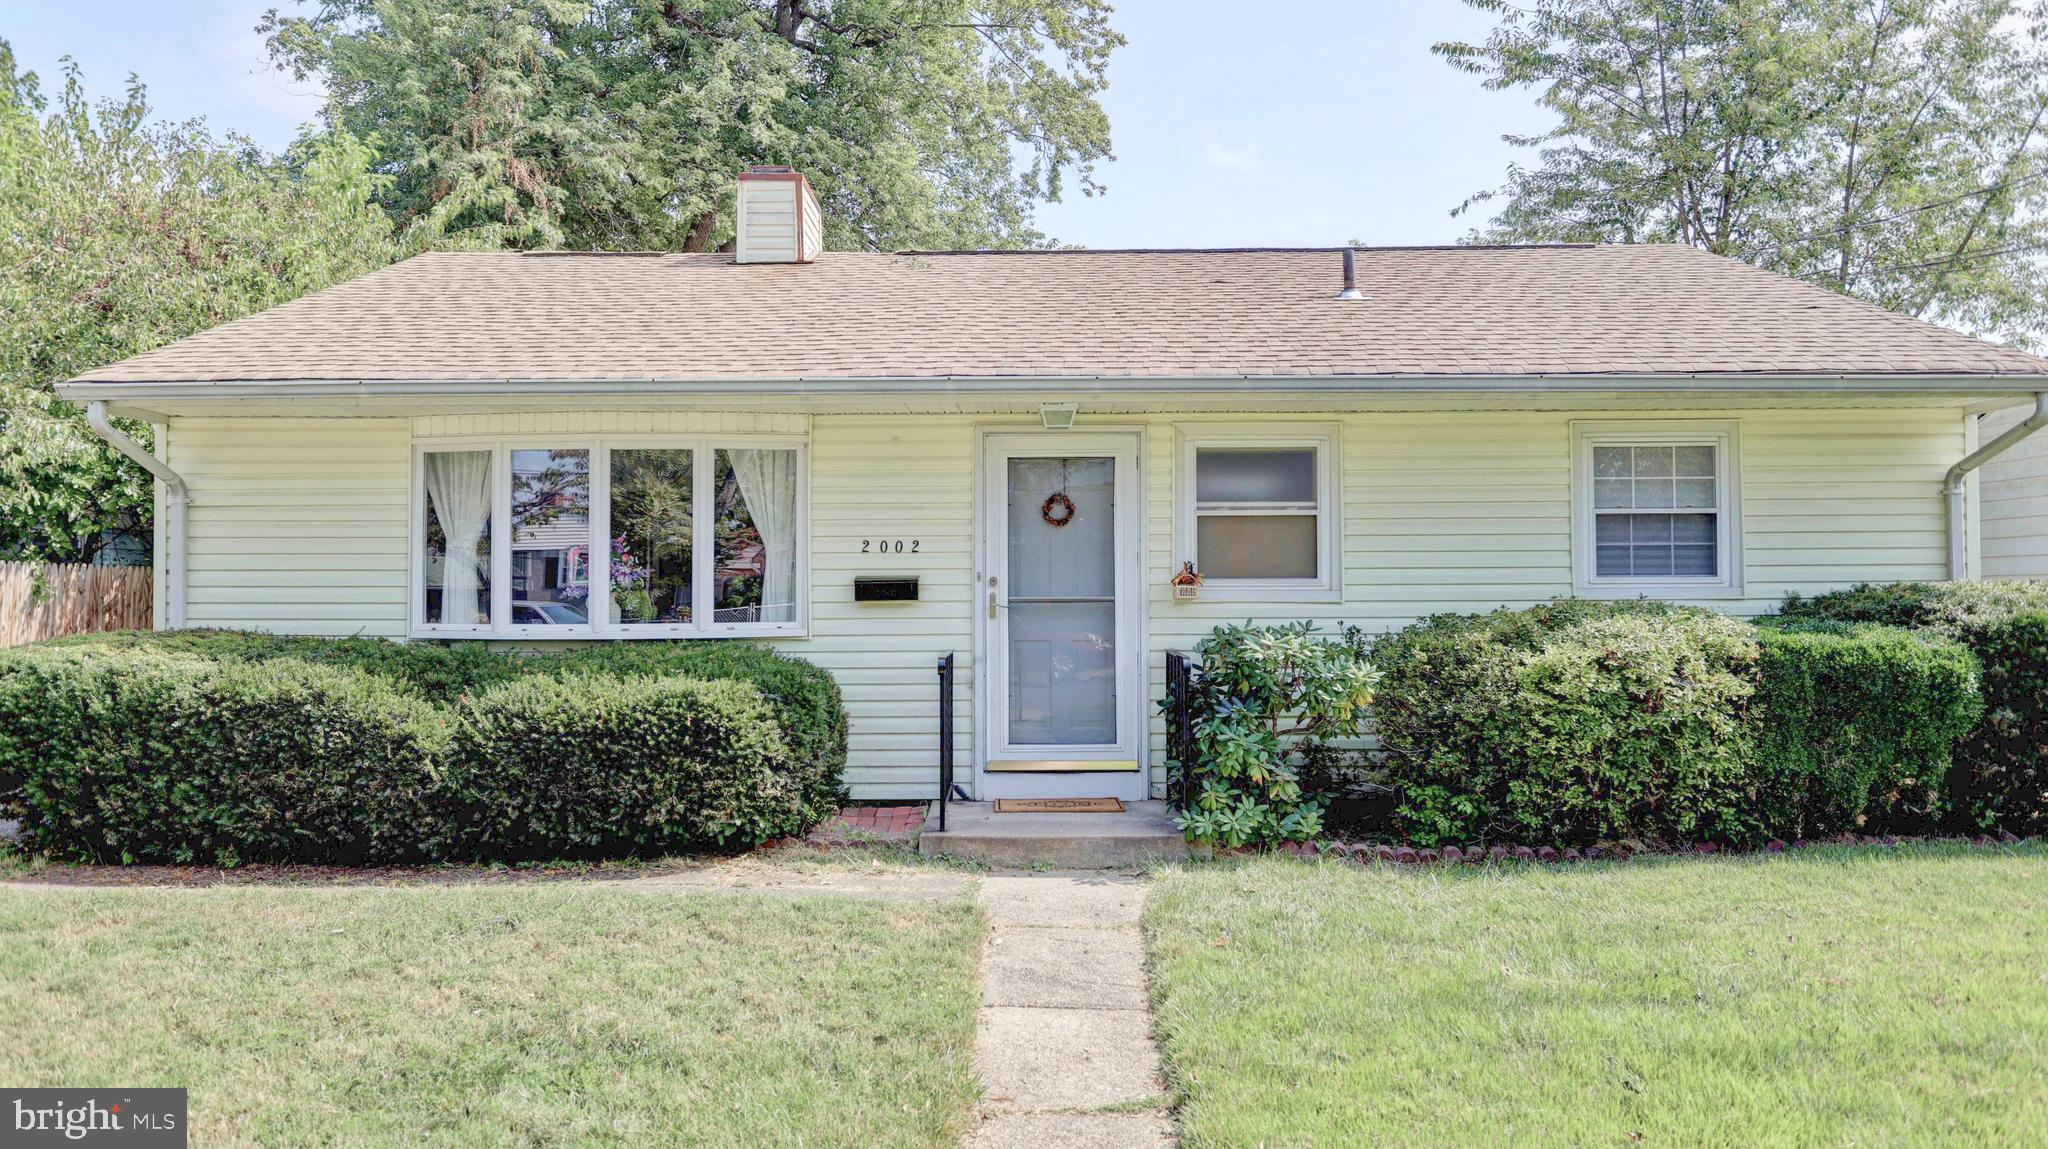 2002 GAINSBORO Rd, Rockville, MD, 20851